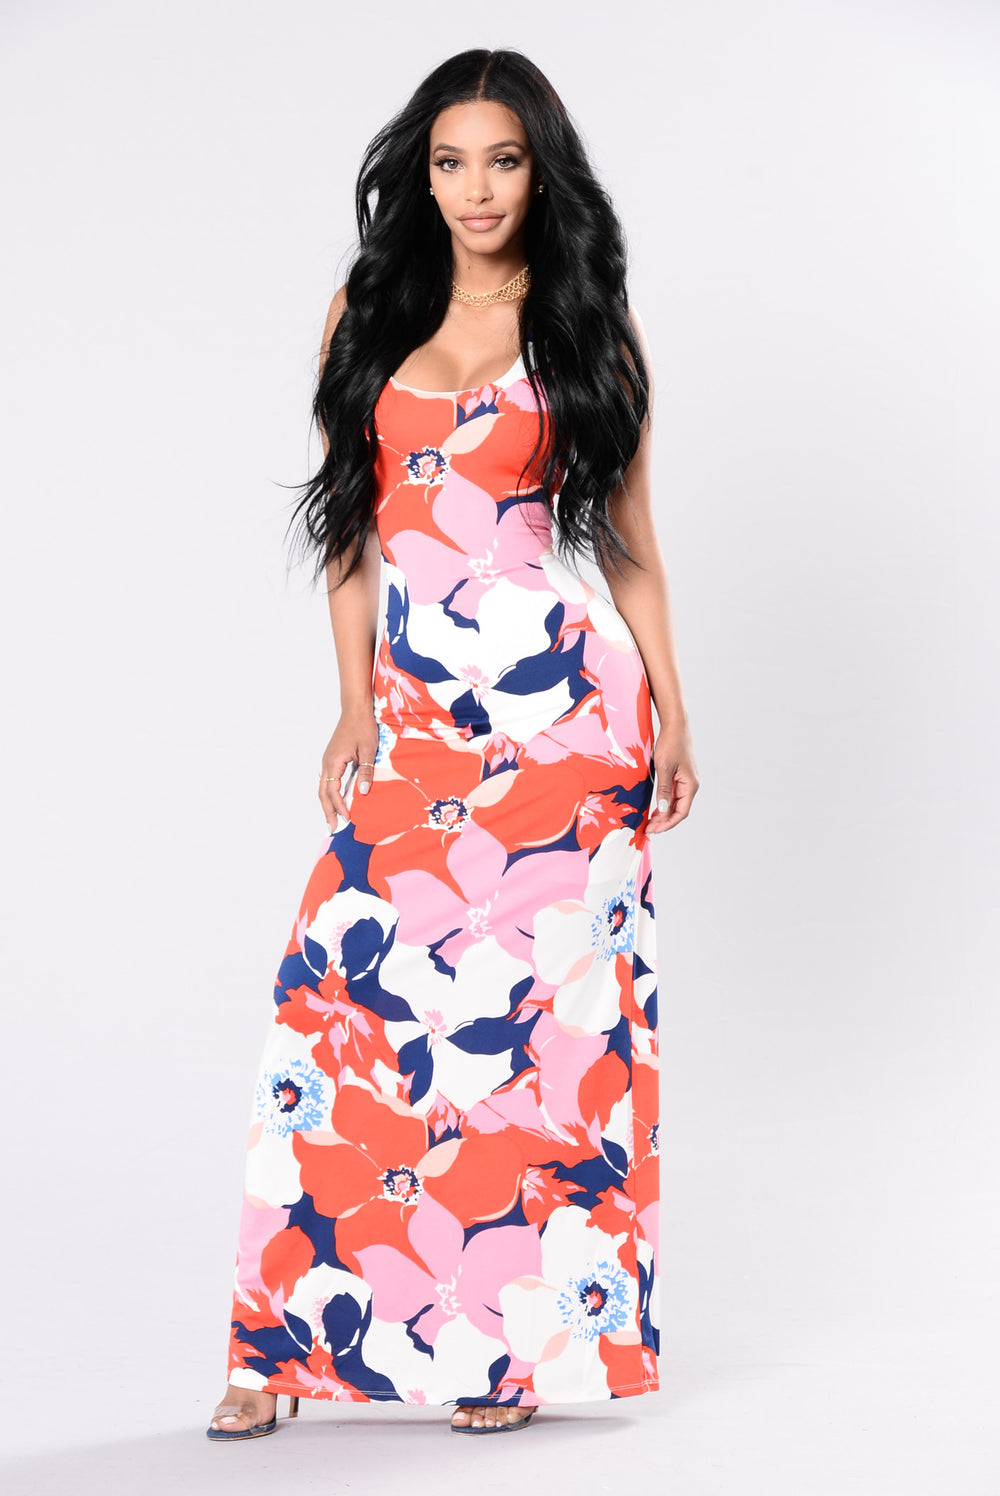 Singing In The Garden Dress - Pink